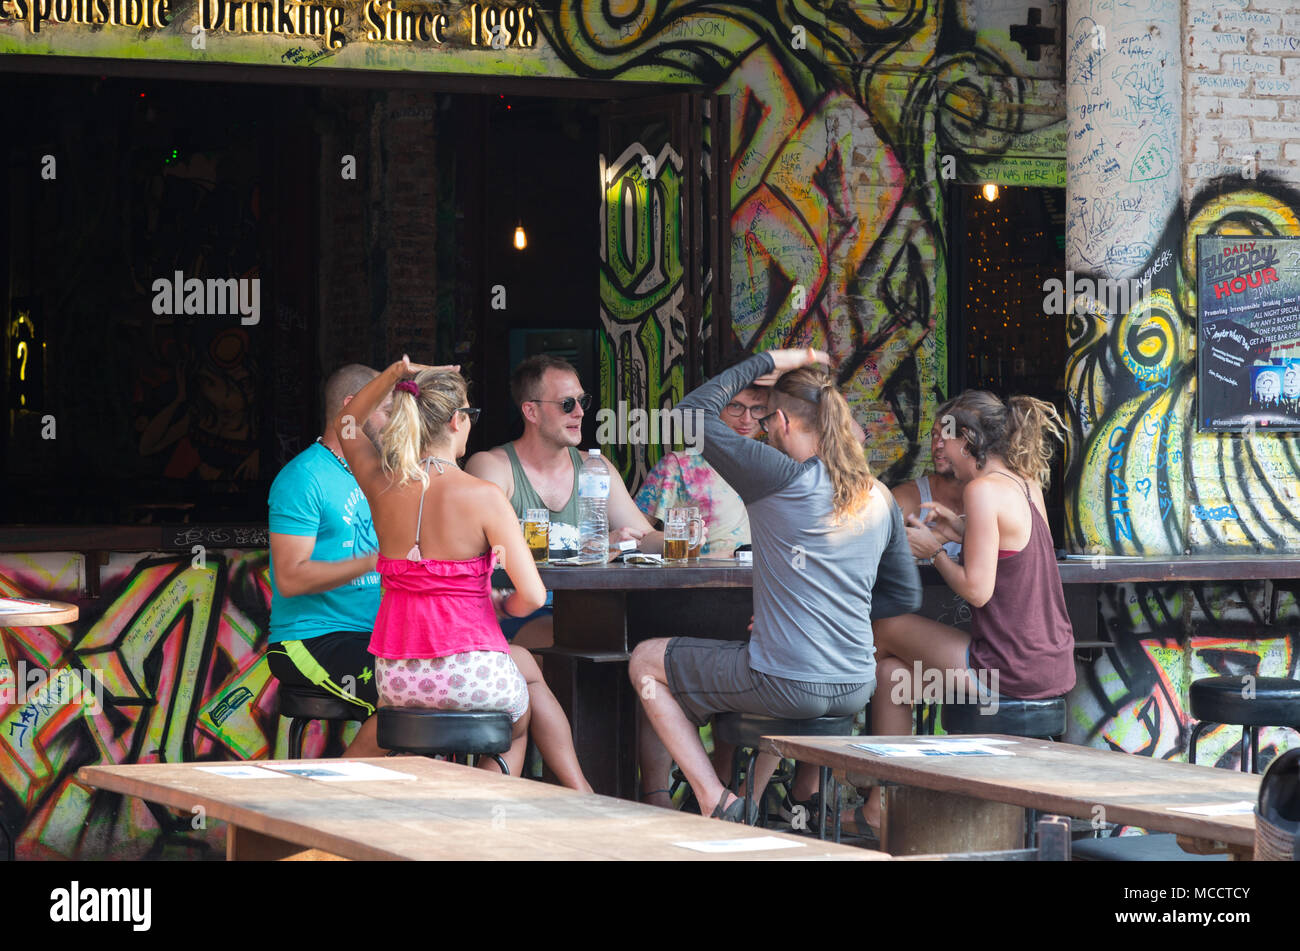 People on holiday  playing drinking games in a bar, Pub Street, Siem Reap, Cambodia Asia - Stock Image